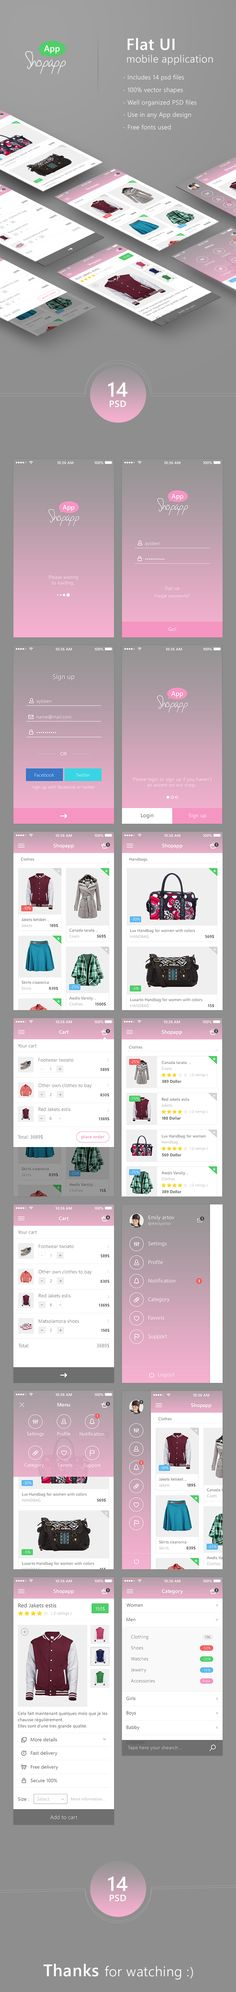 https://www.behance.net/gallery/22634455/Shopapp-Flat-Mobile-App-UI-Shopping-Download